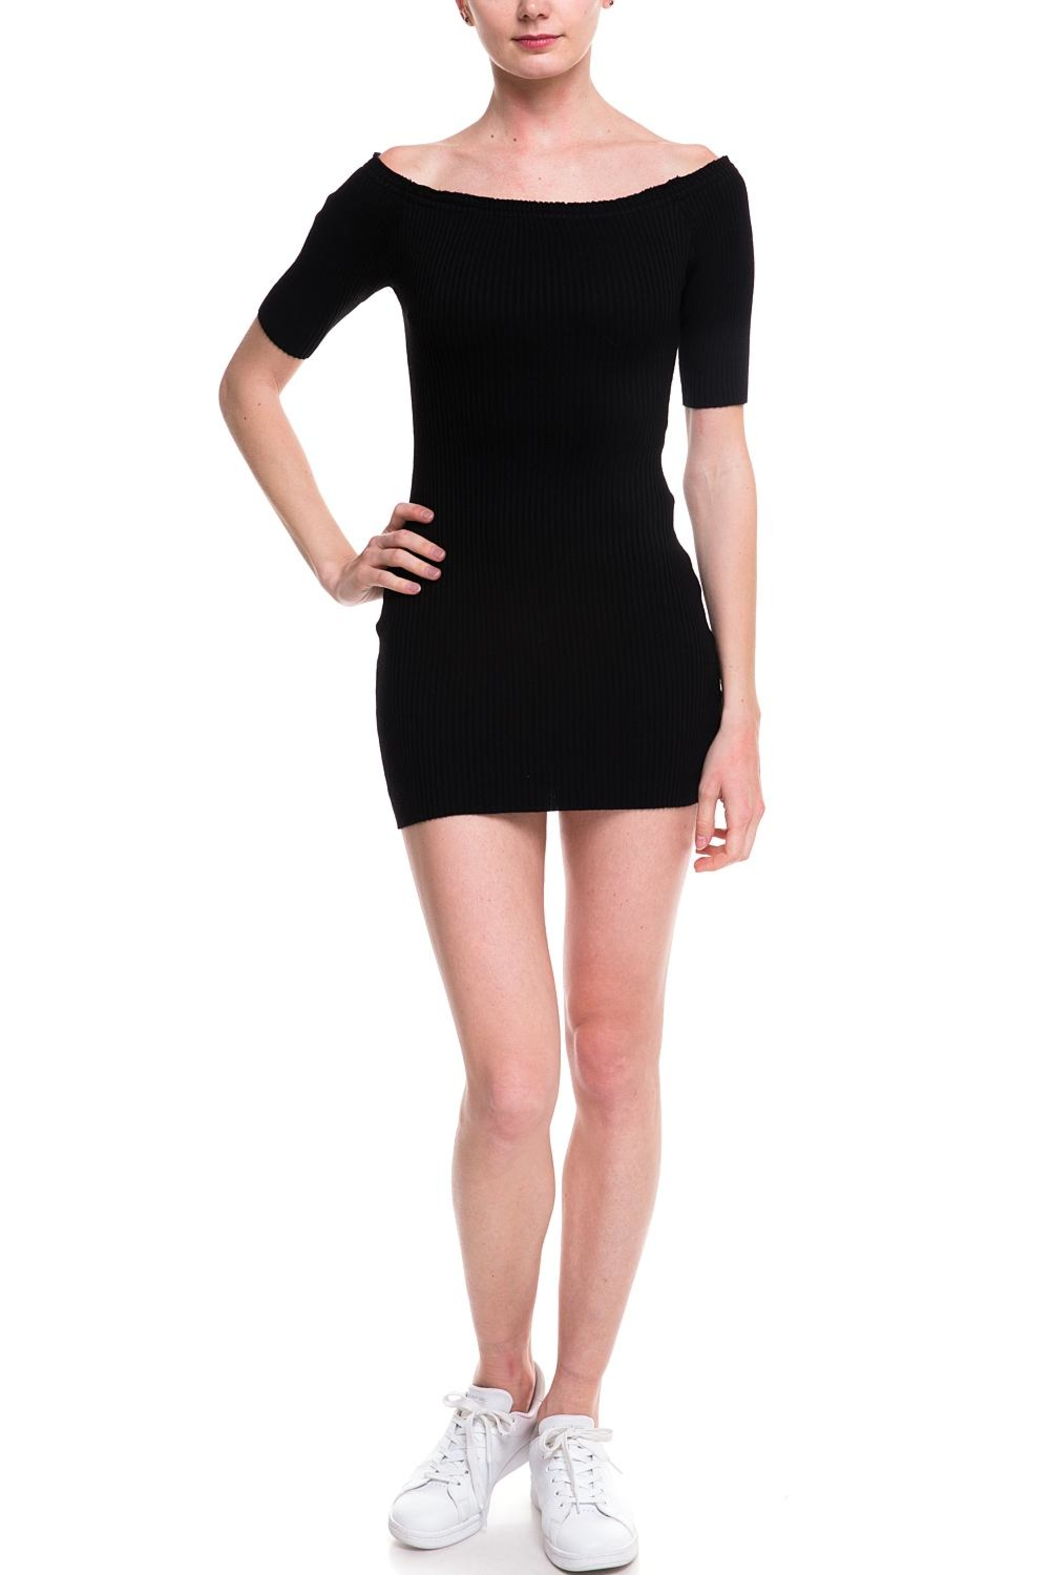 Noble U Ots Ribbed Dress - Main Image